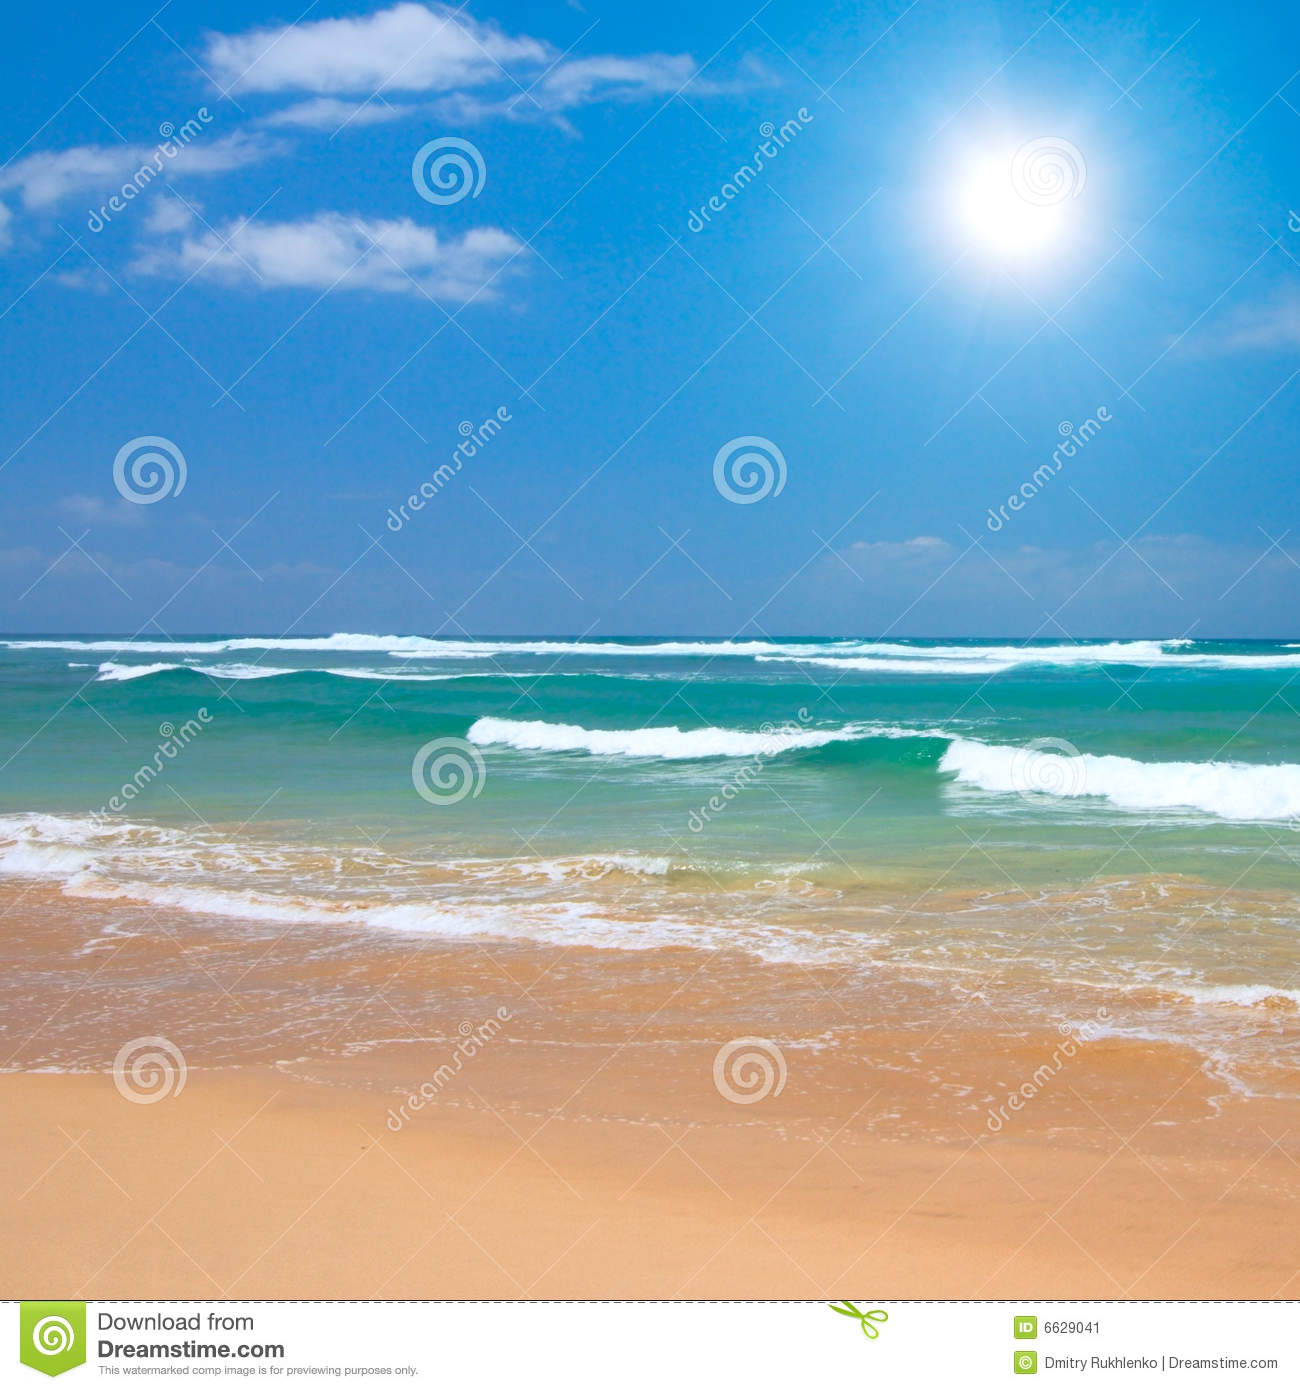 Tropical Beach And Peaceful Ocean: Peaceful Beach Scene Stock Image. Image Of Vacations